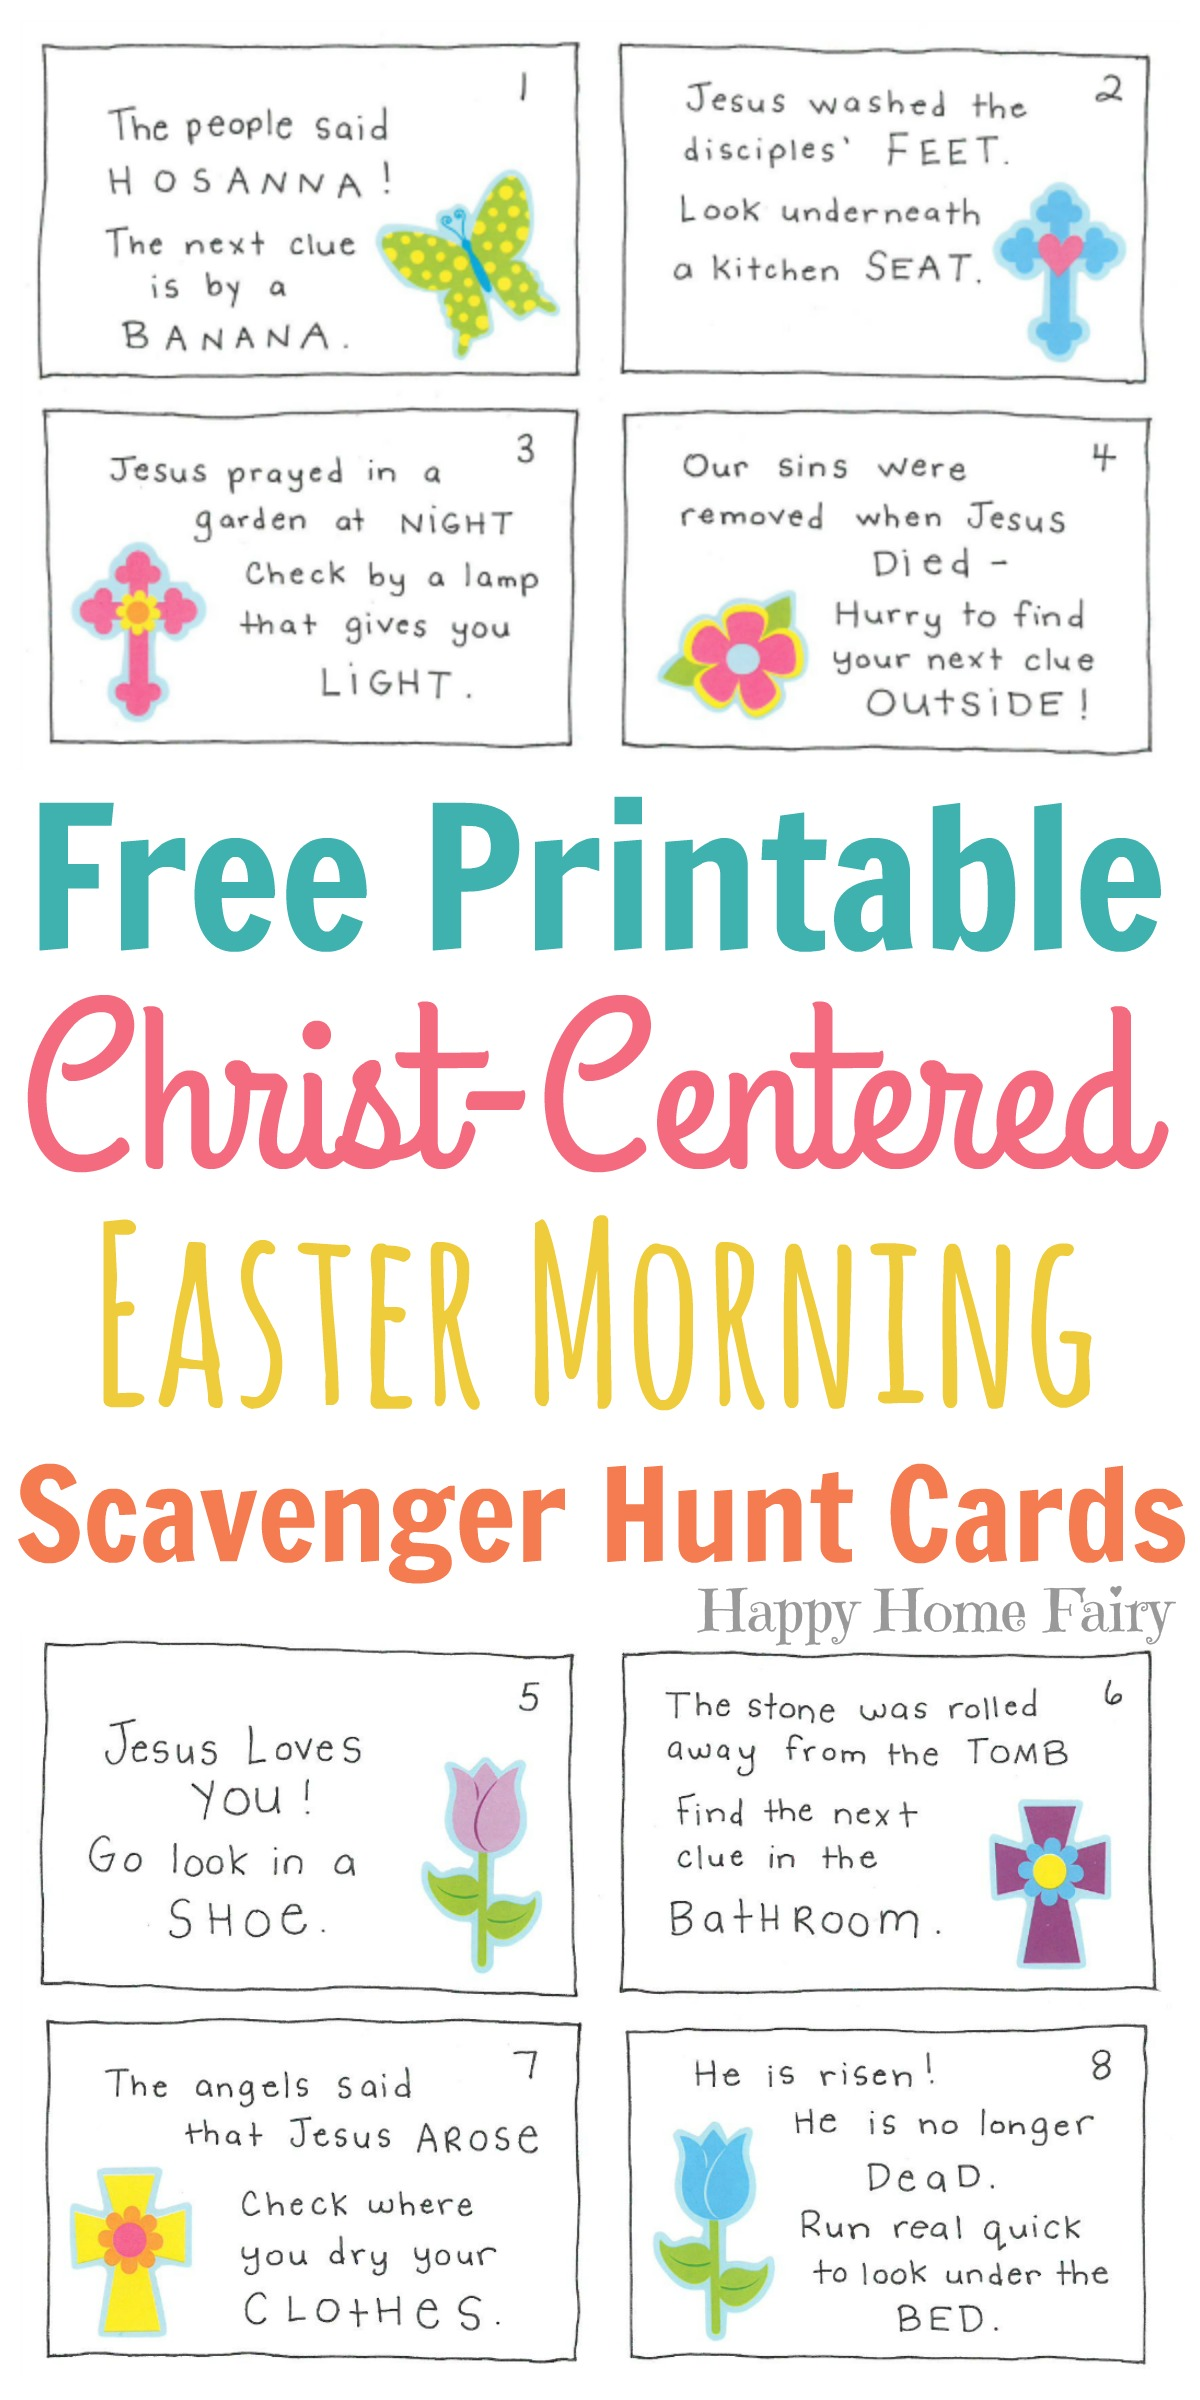 image relating to Clue Cards Printable referred to as Christ-Based Easter Early morning Scavenger Hunt for